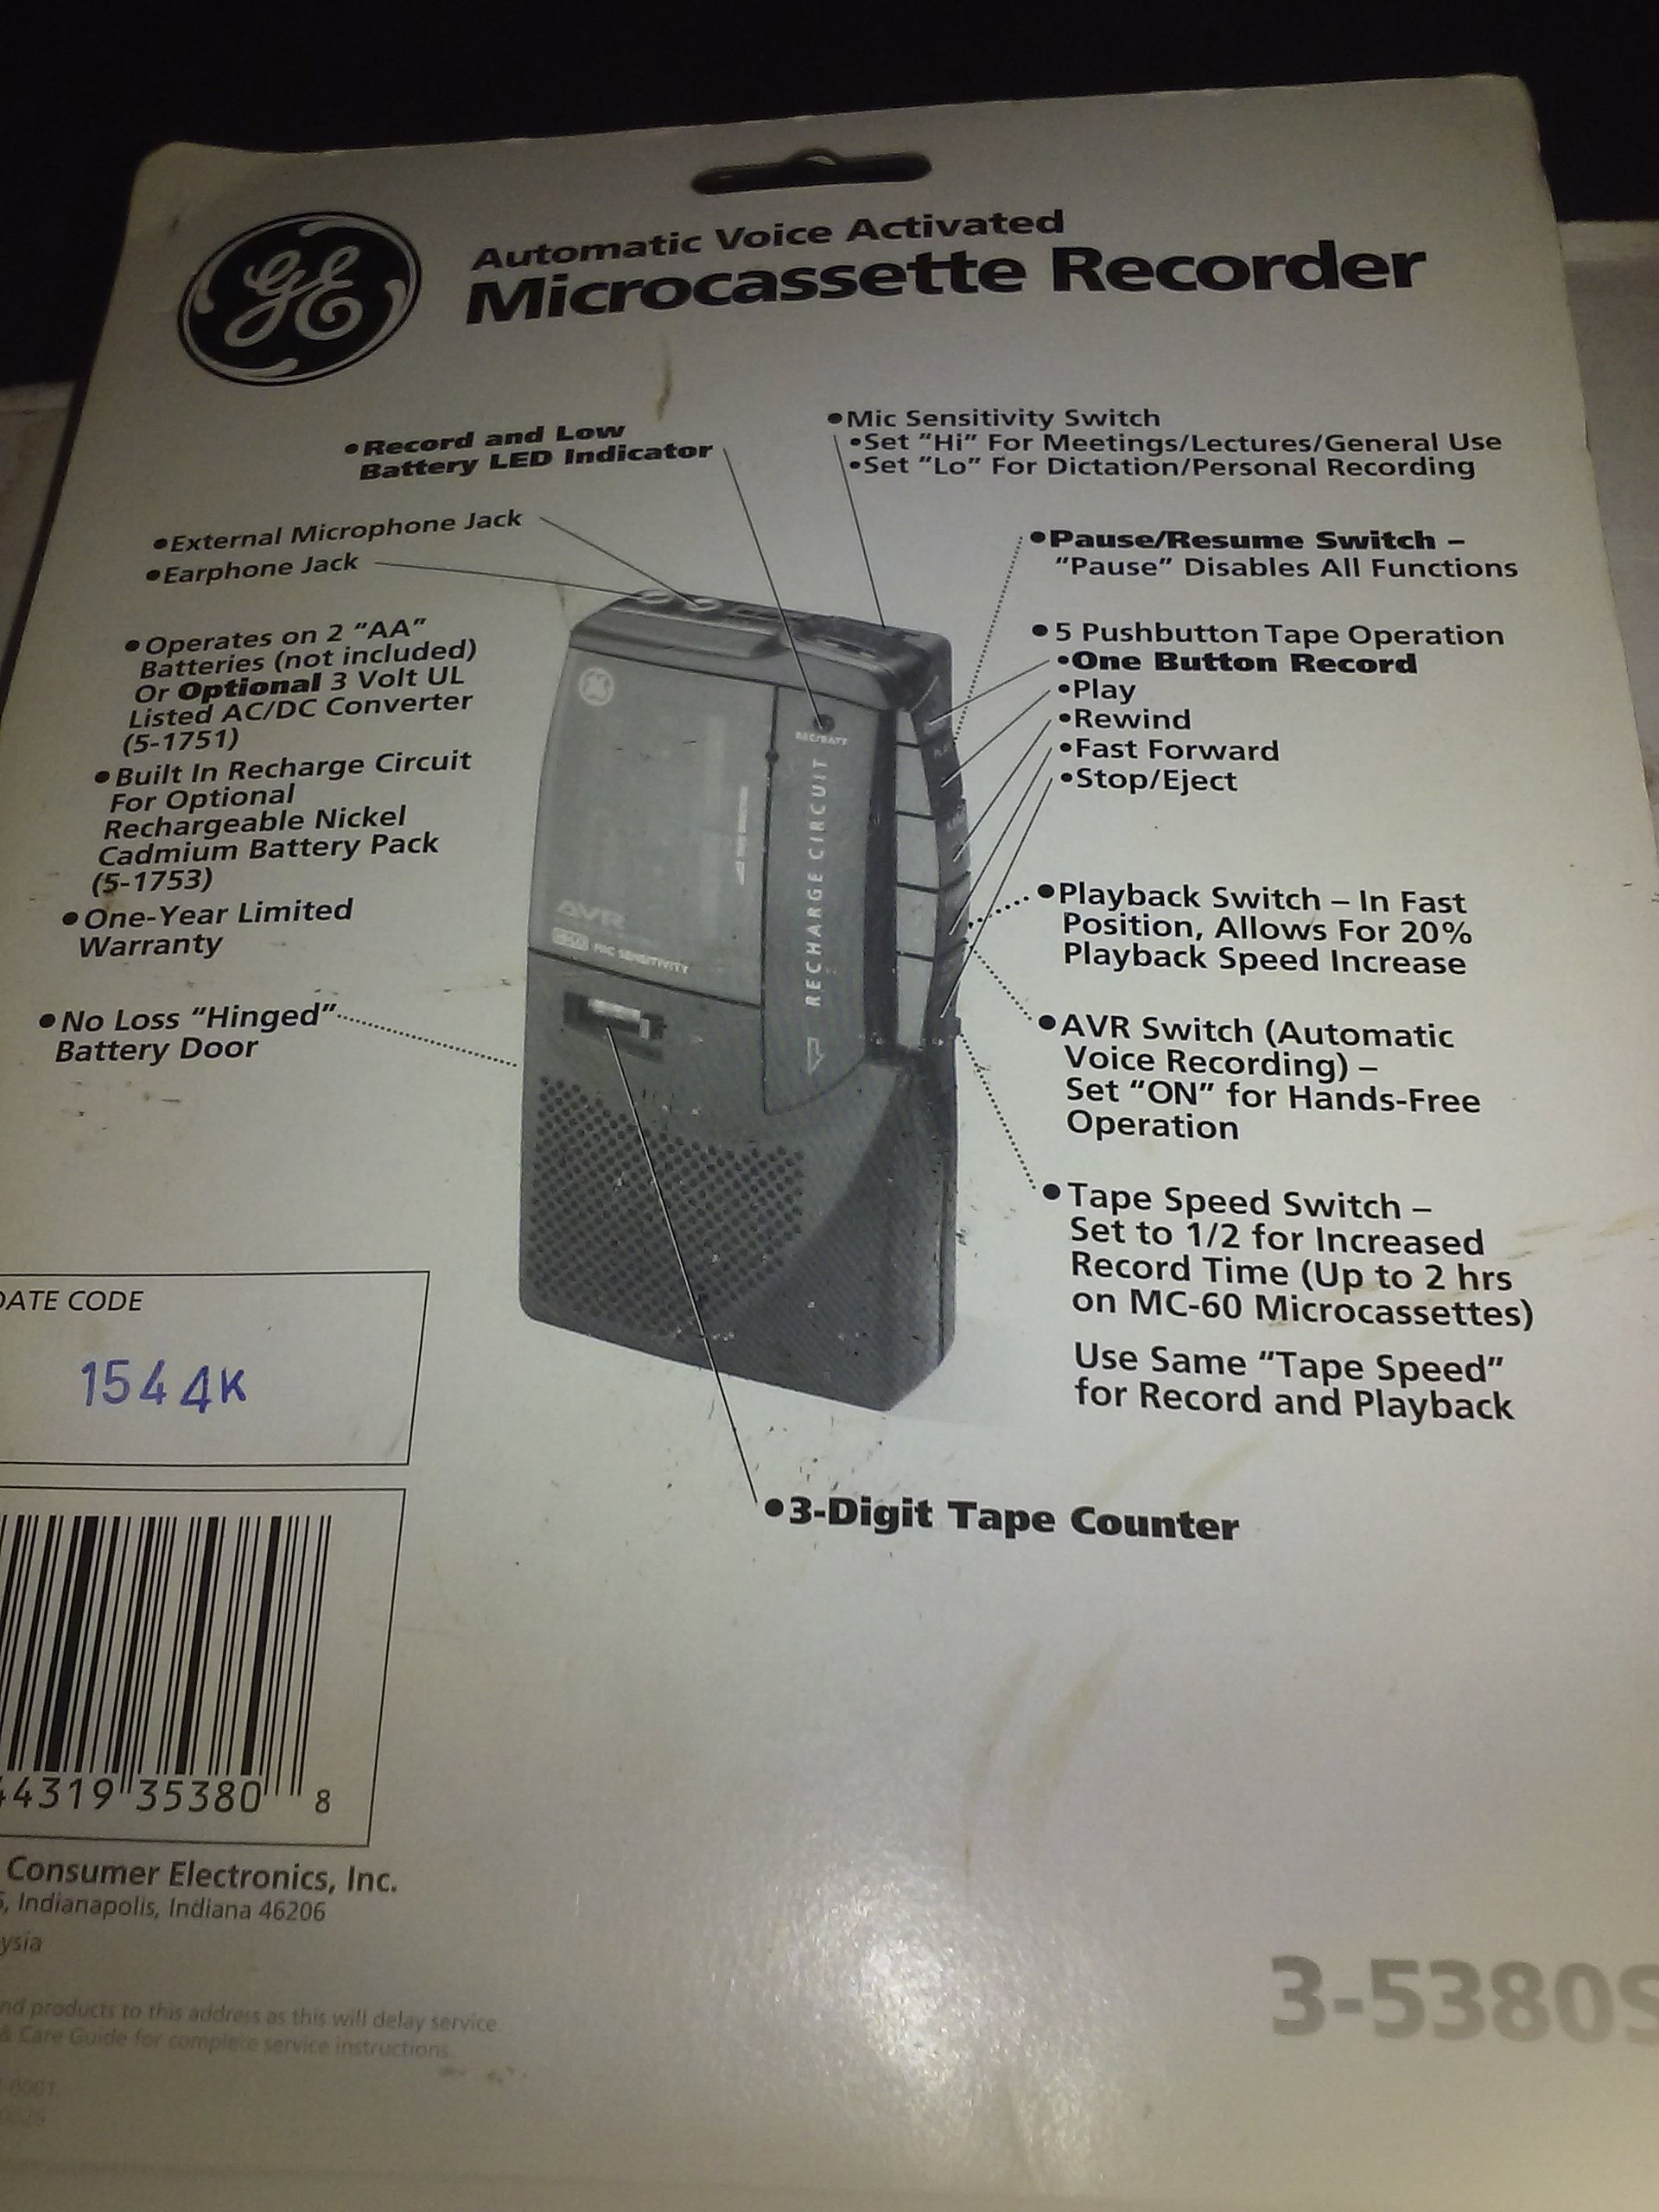 GE Automatic Voice Activated Microcassette Recorder, Model 3-5380s